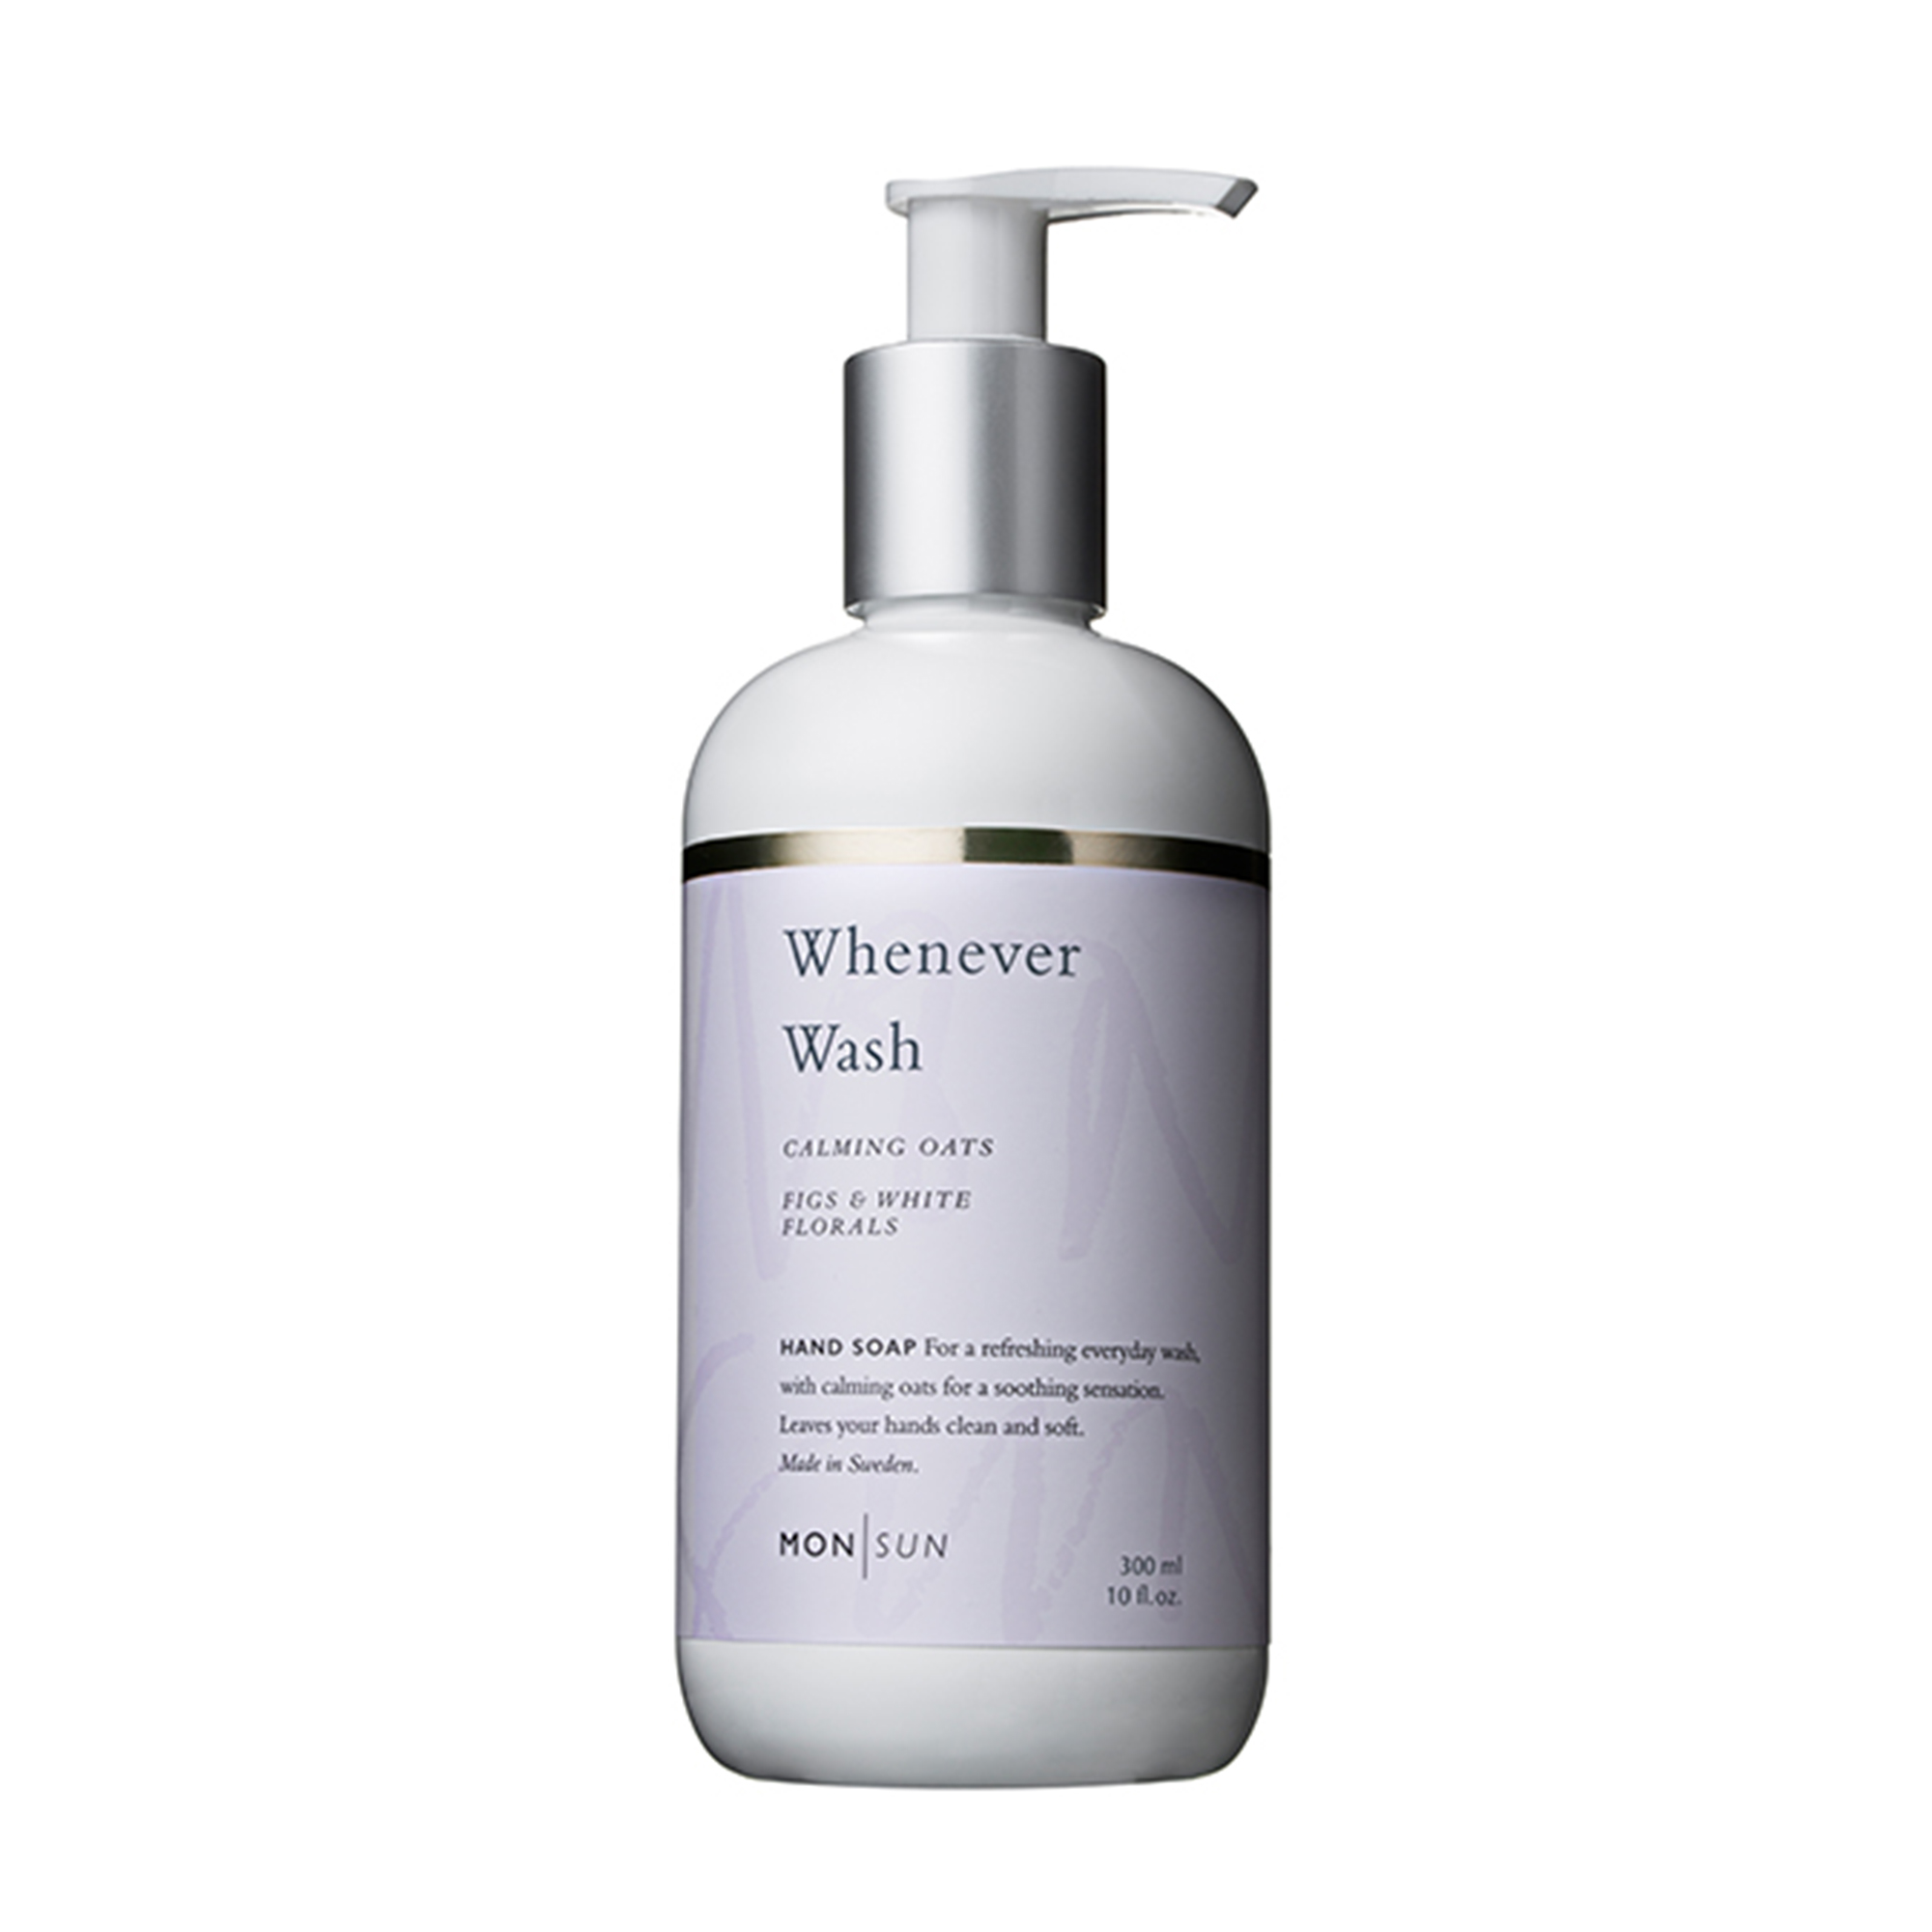 Whenever Wash & Calming Oats Hand Soap